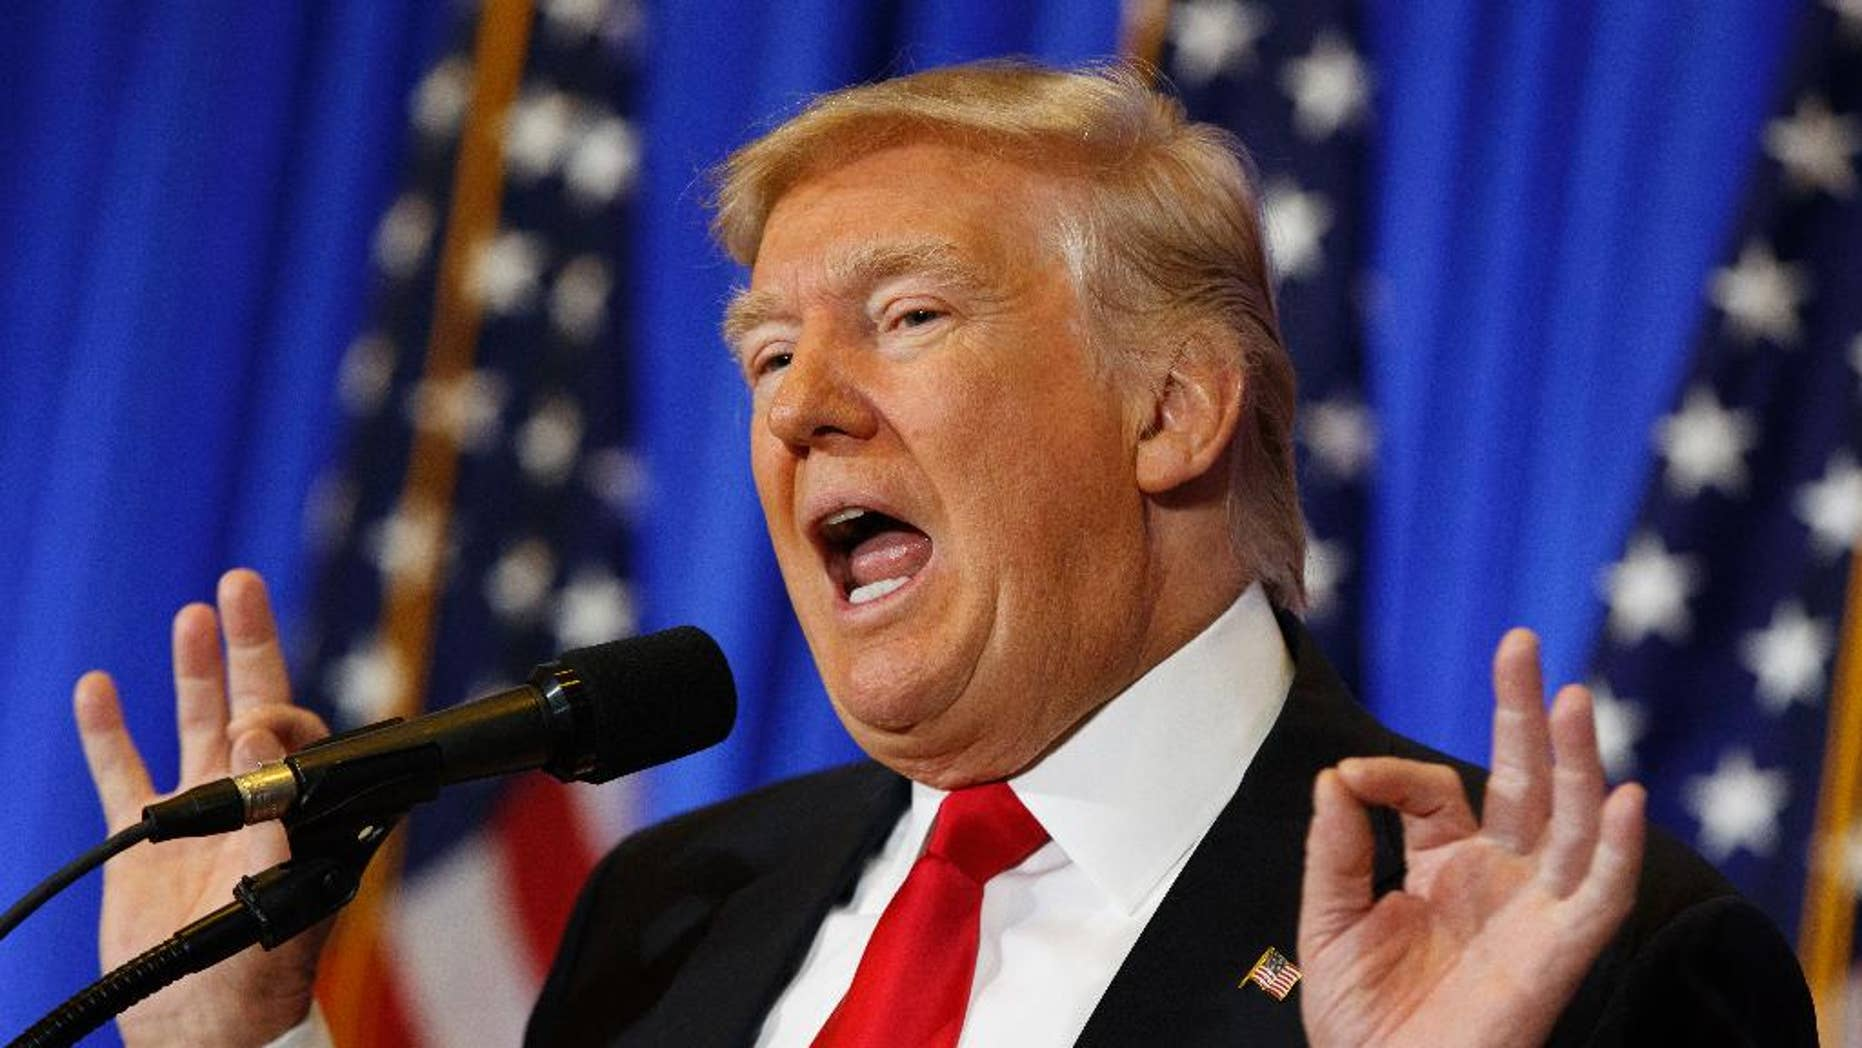 President-elect Donald Trump speaks during a news conference in the lobby of Trump Tower in New York, Wednesday, Jan. 11, 2017, in New York. (AP Photo/Evan Vucci)